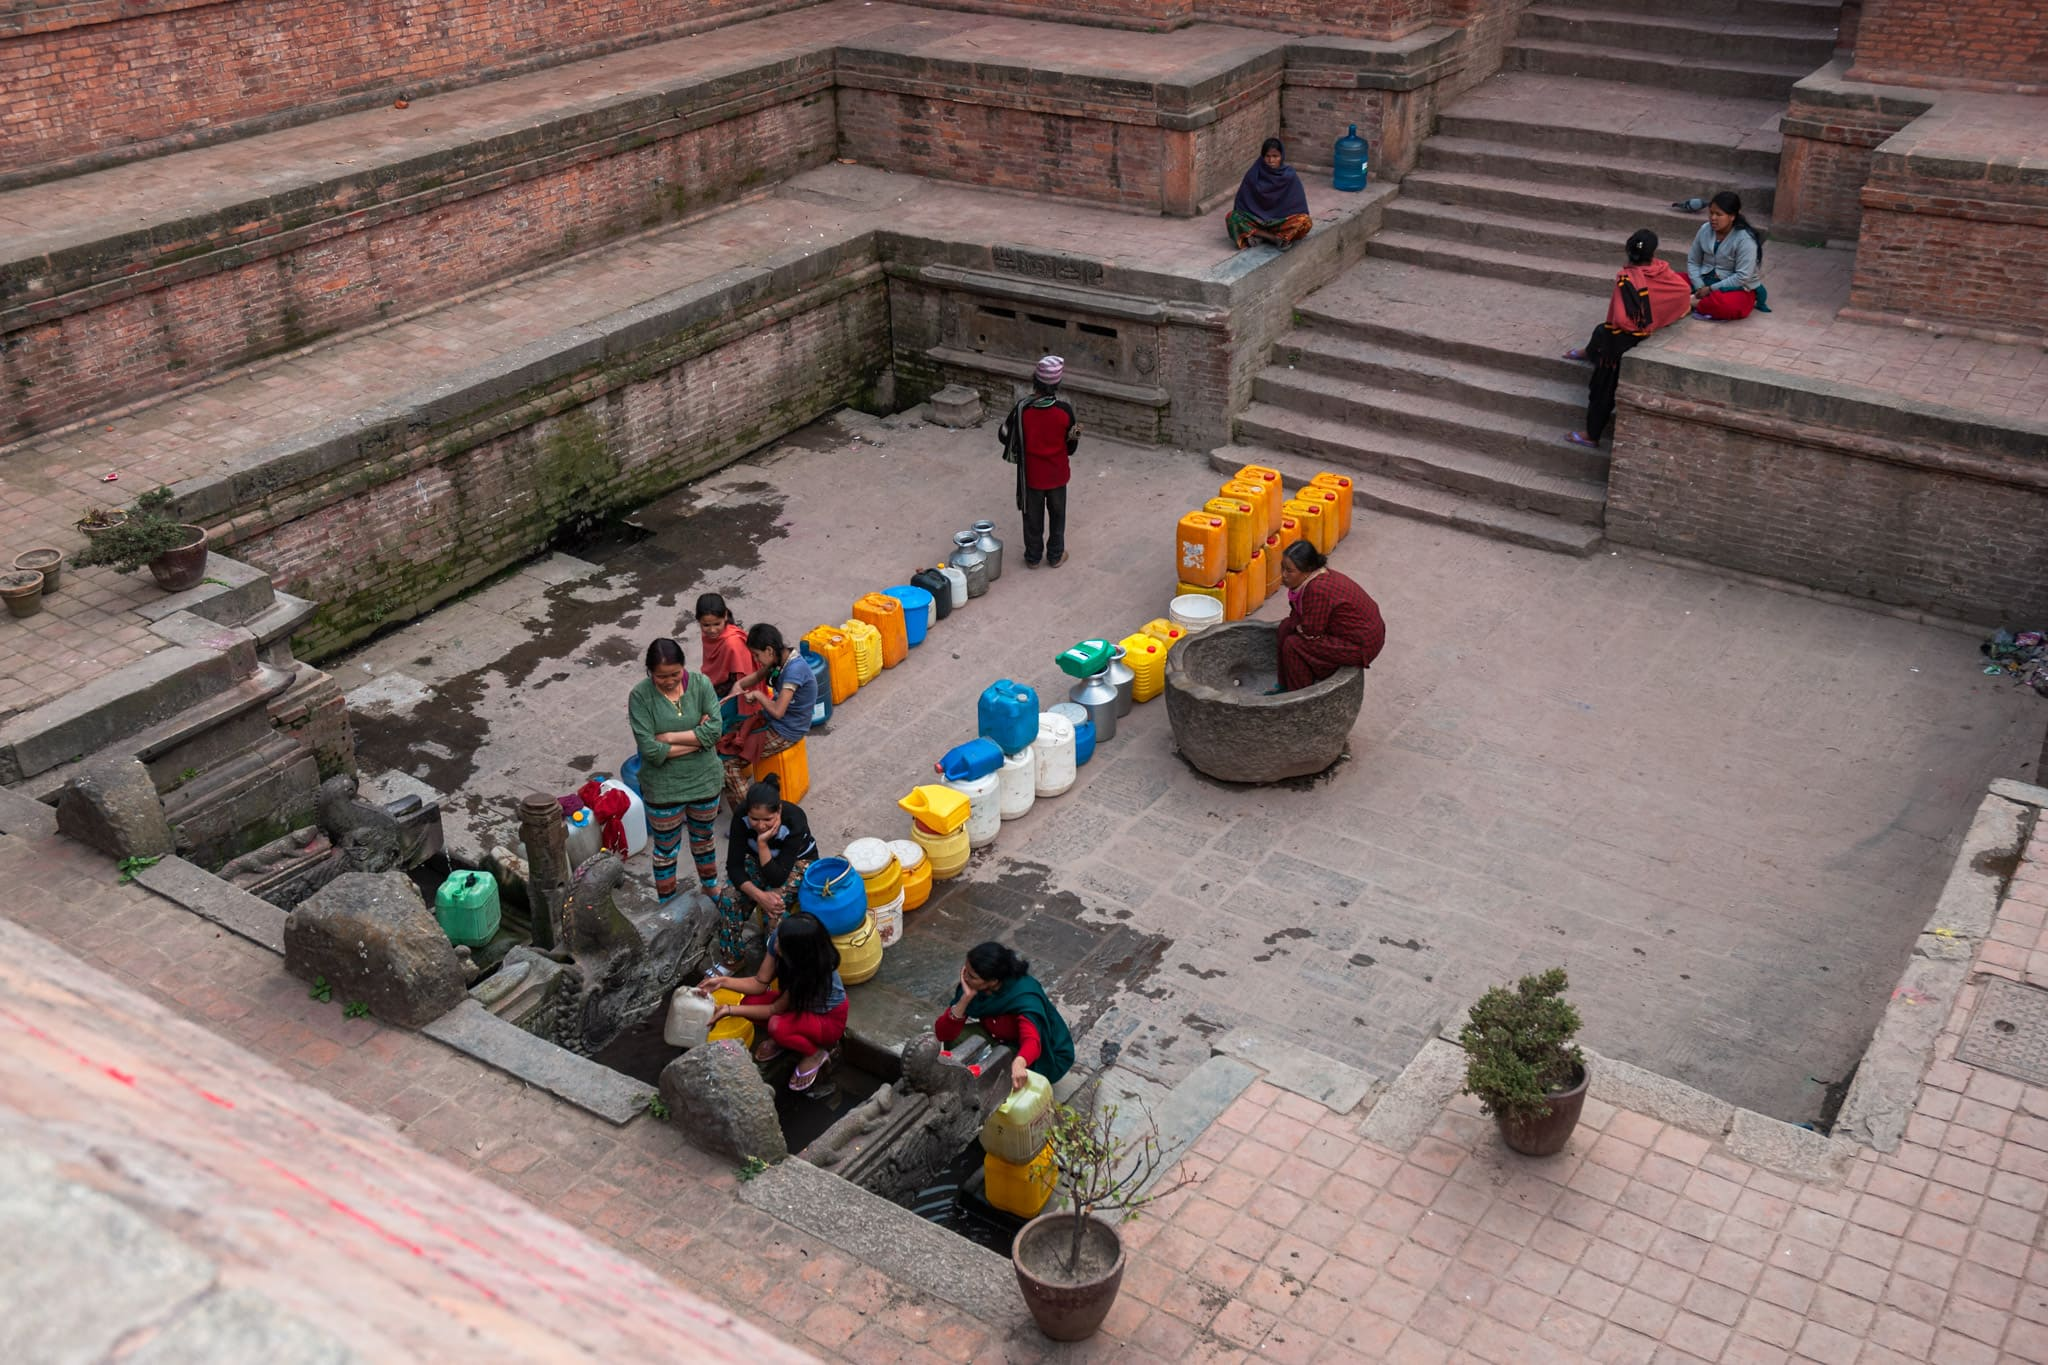 Nepalese women at the well in Patan Durbar Square collect water with colourful tanks. Kathmandu, Nepal.